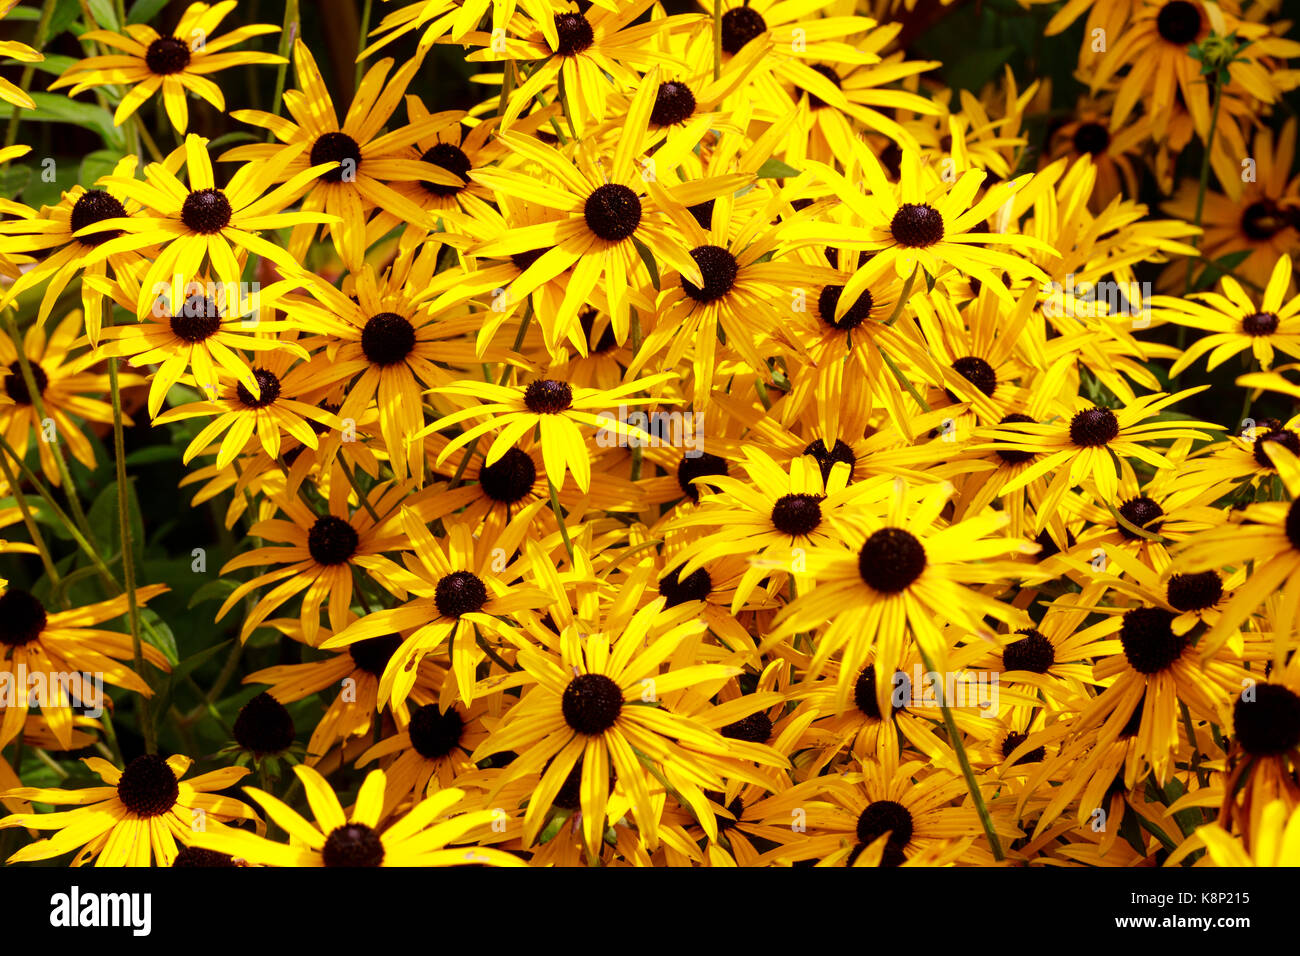 Flowers With Yellow And Black Centre Stock Photos Flowers With